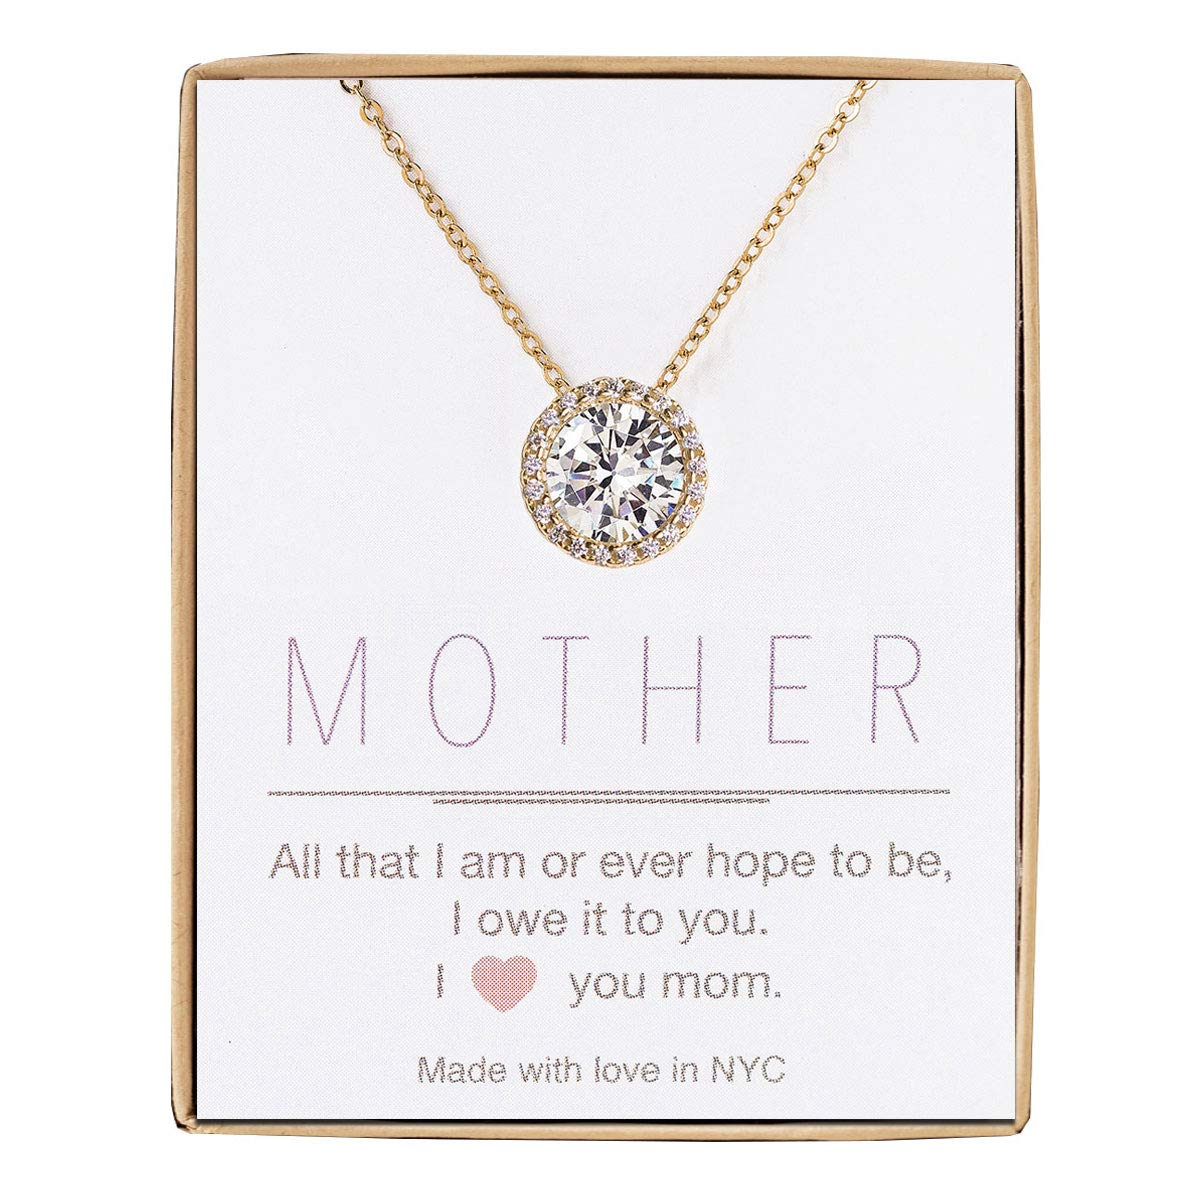 A+O Gift for Mom, Aunt, Grandma - Solitaire Halo Necklace in Gold, Rose Gold, Silver